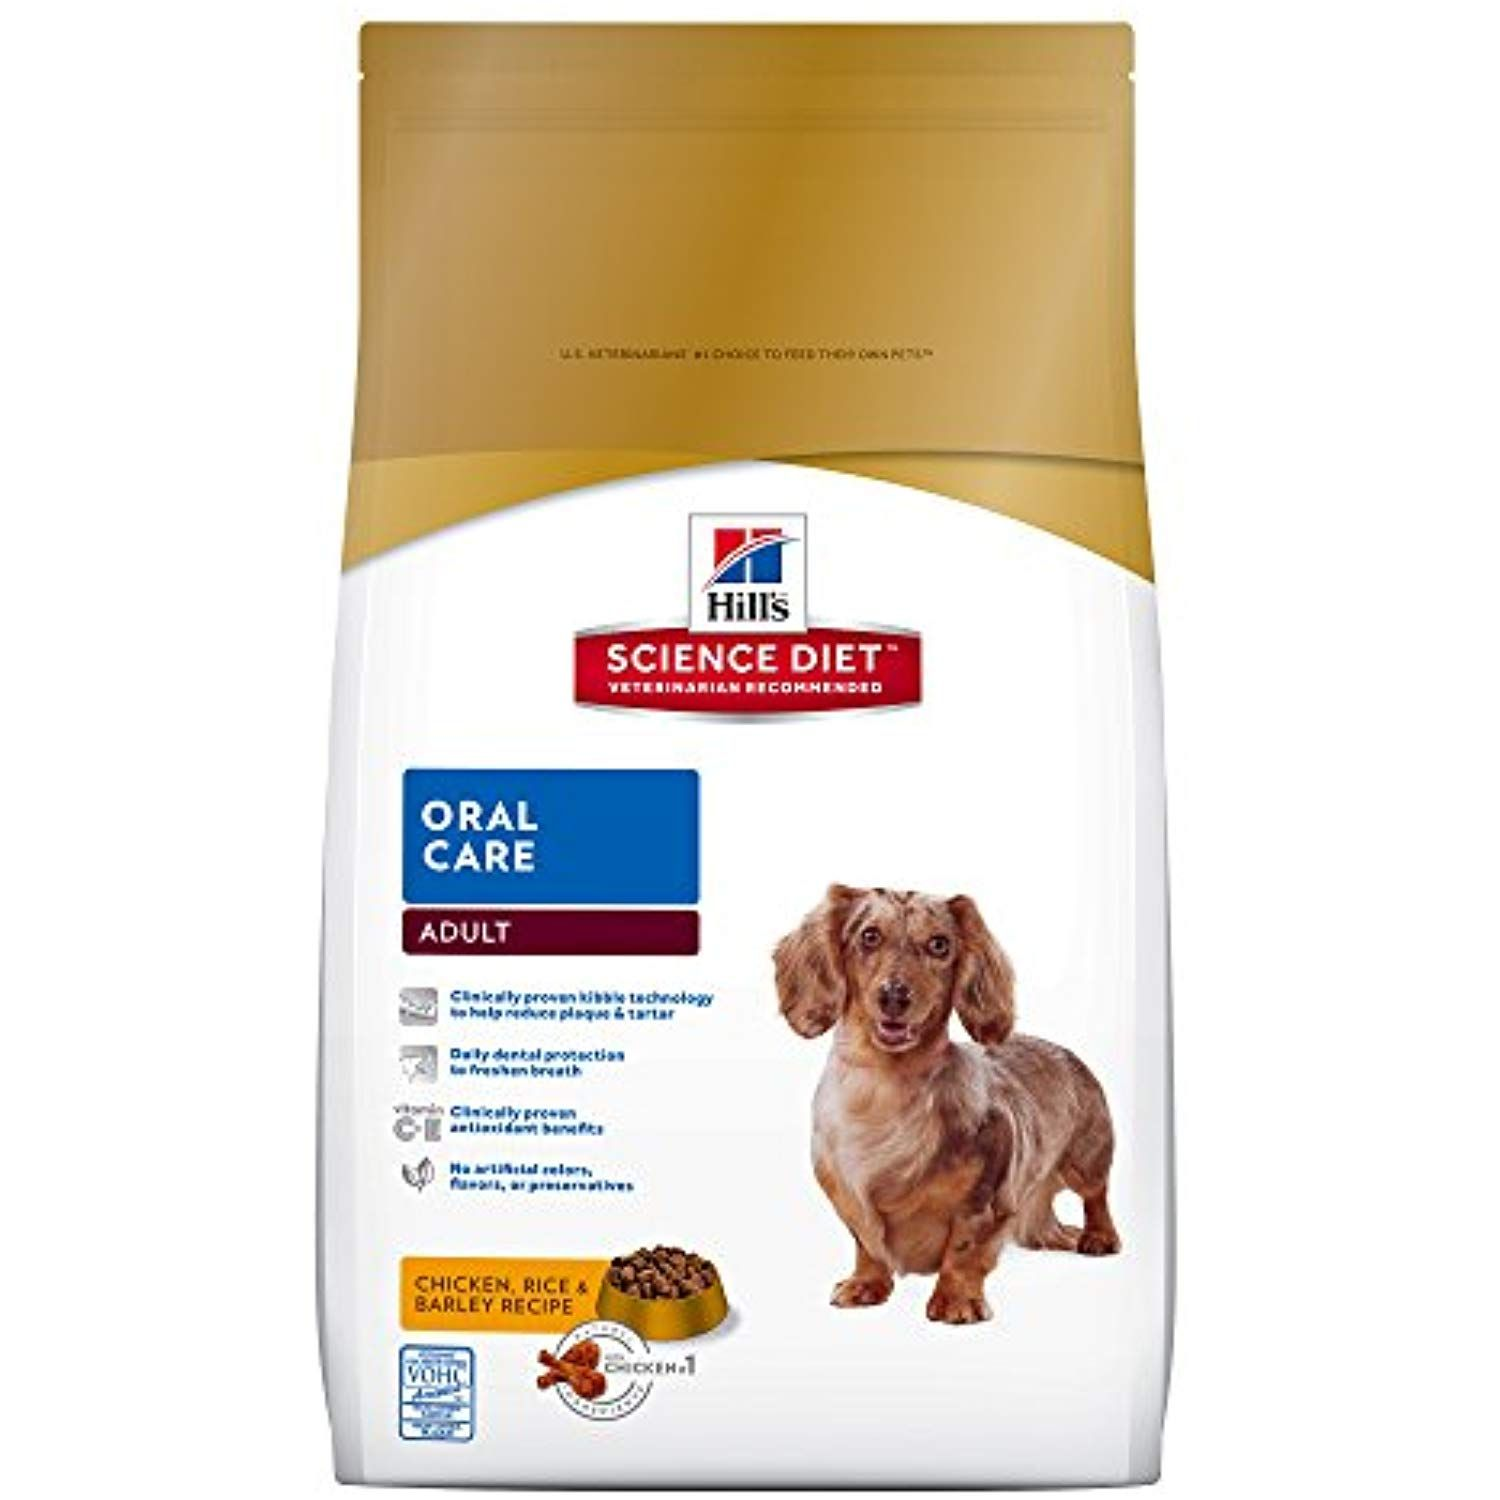 Hill'S Science Diet Adult Oral Care Dog Food, Chicken Rice